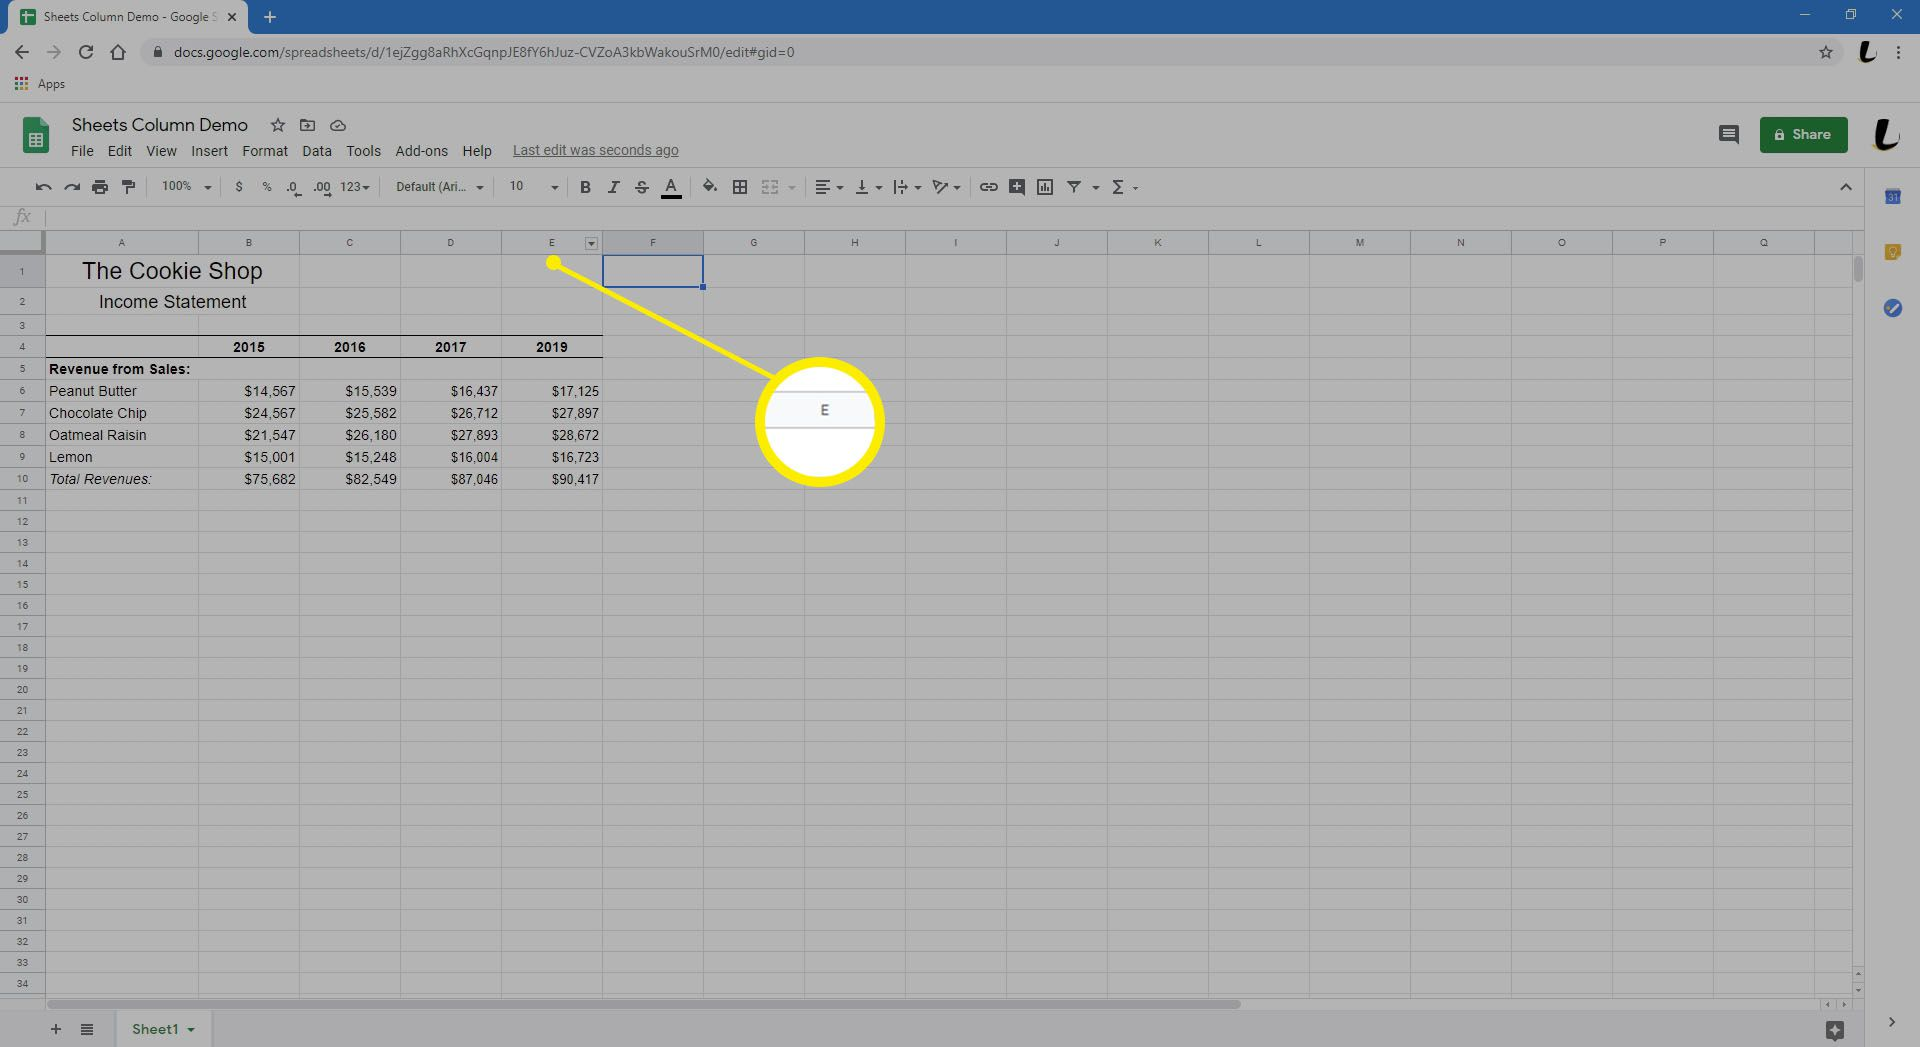 Hovering mouse over column E in Sheets.